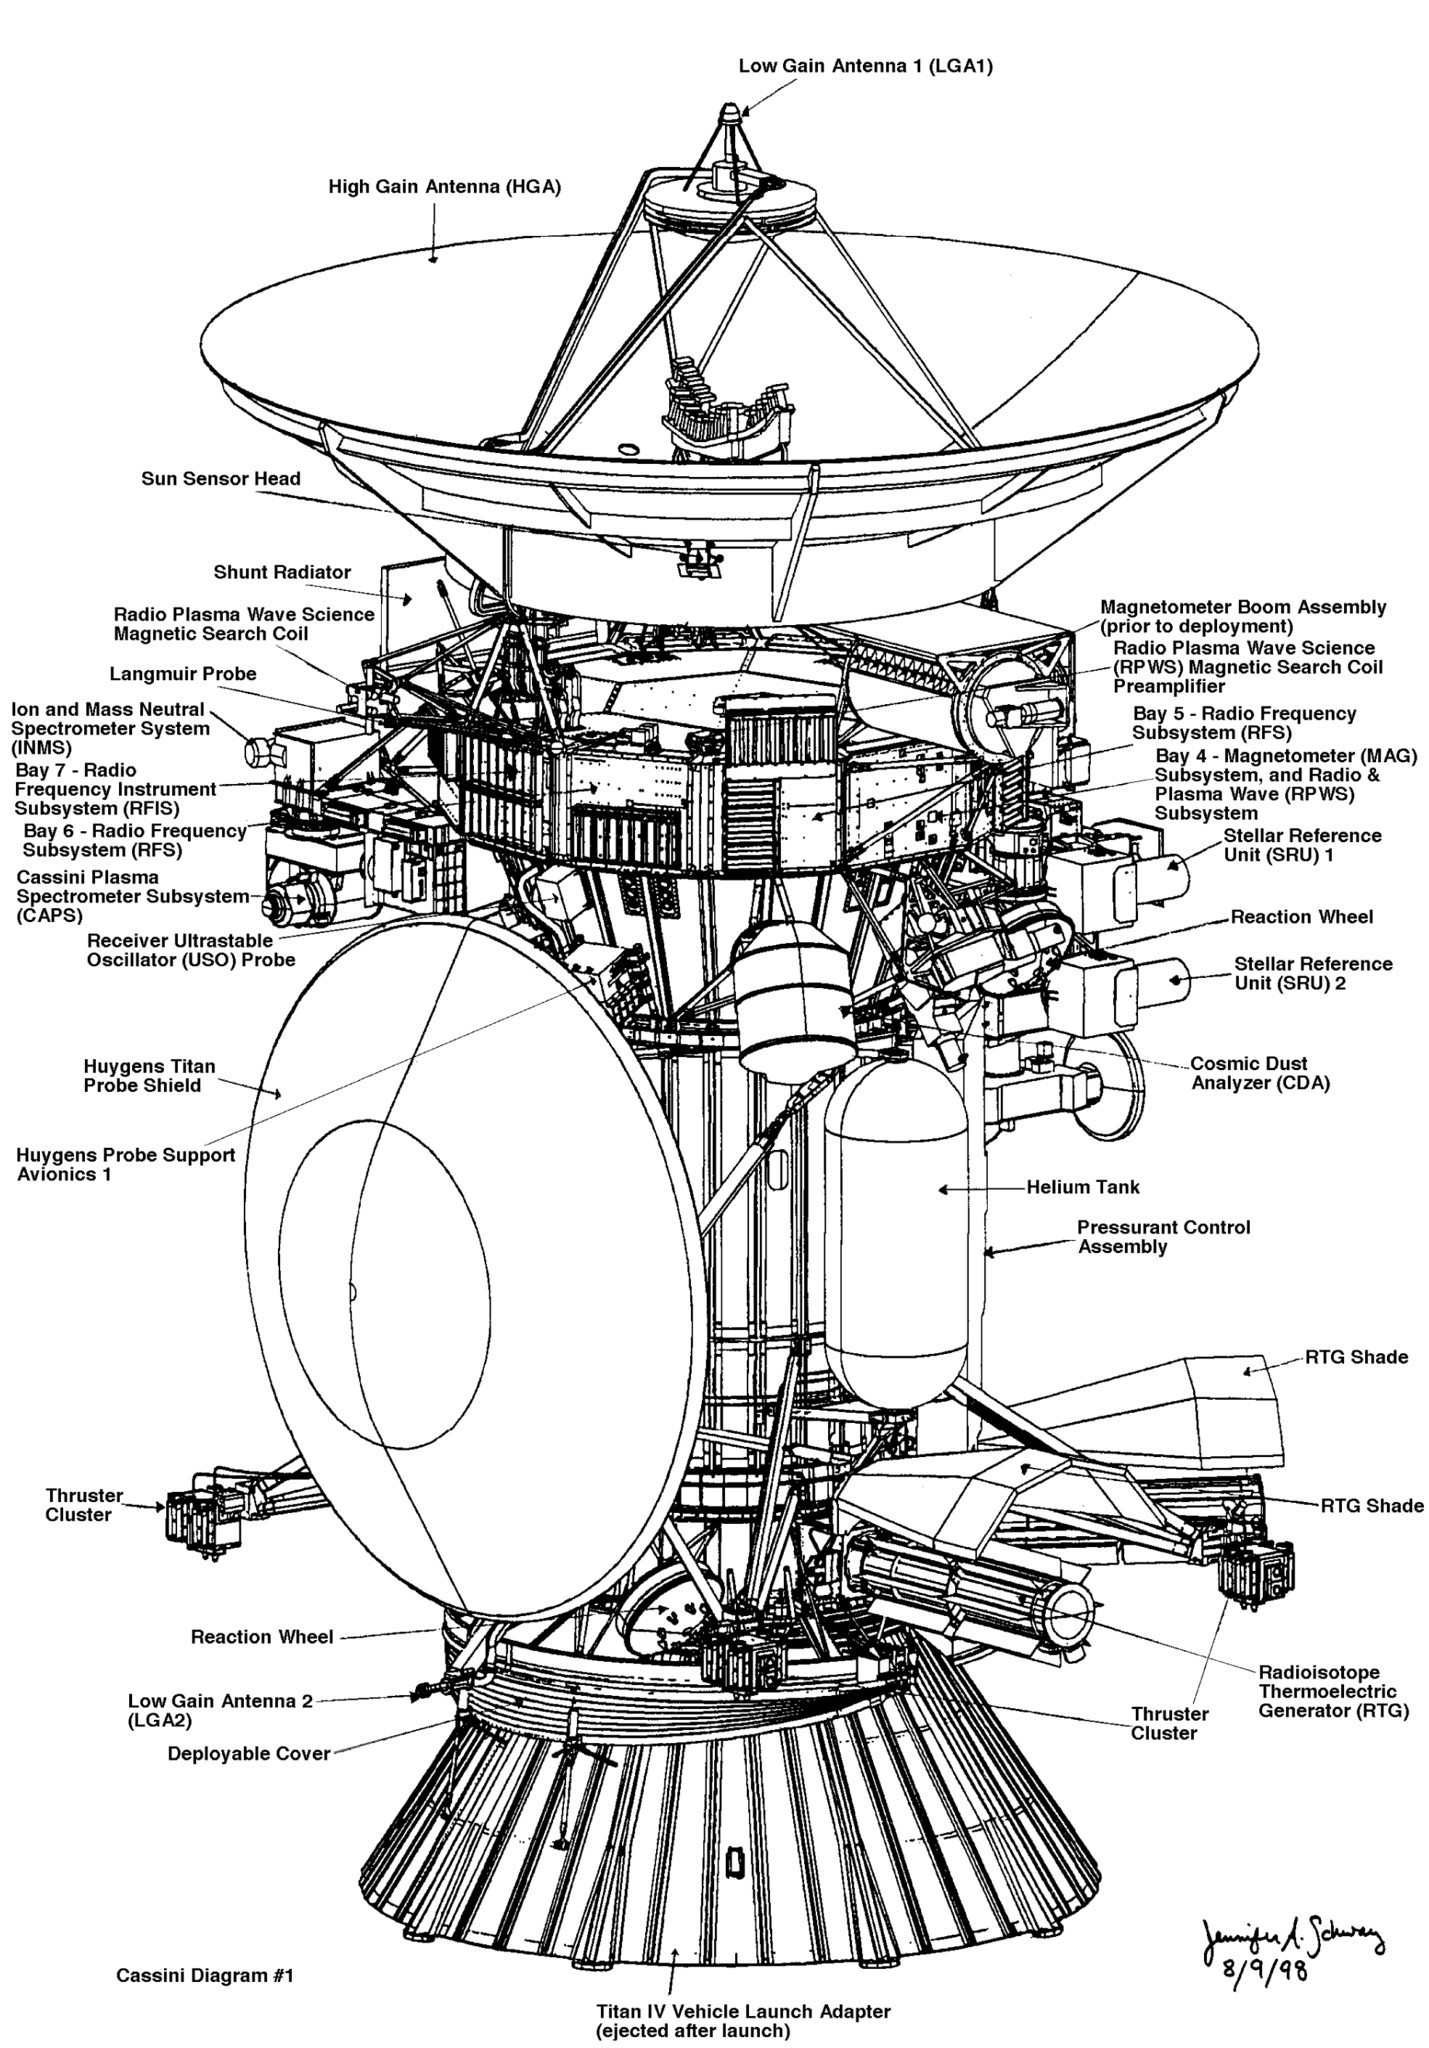 Flying Fuel Tanks Which Deep Space Spacecraft Had The